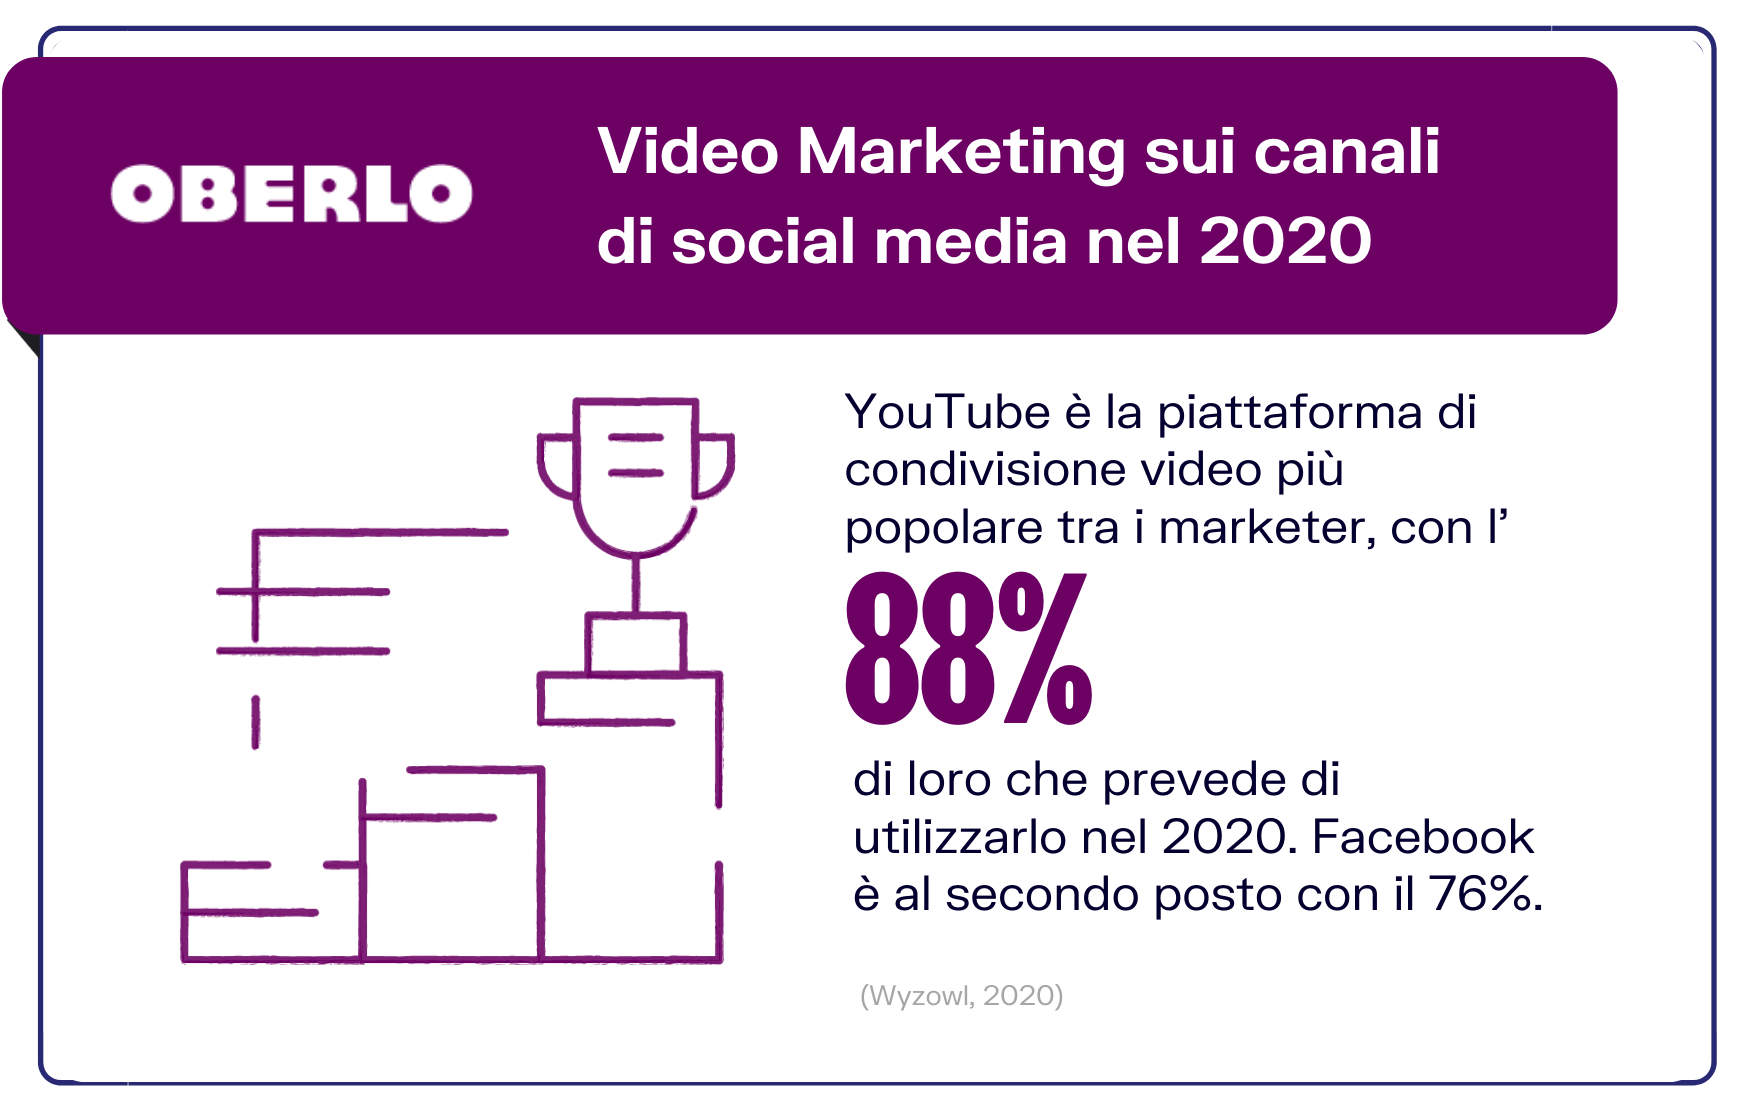 statistiche video marketing social media